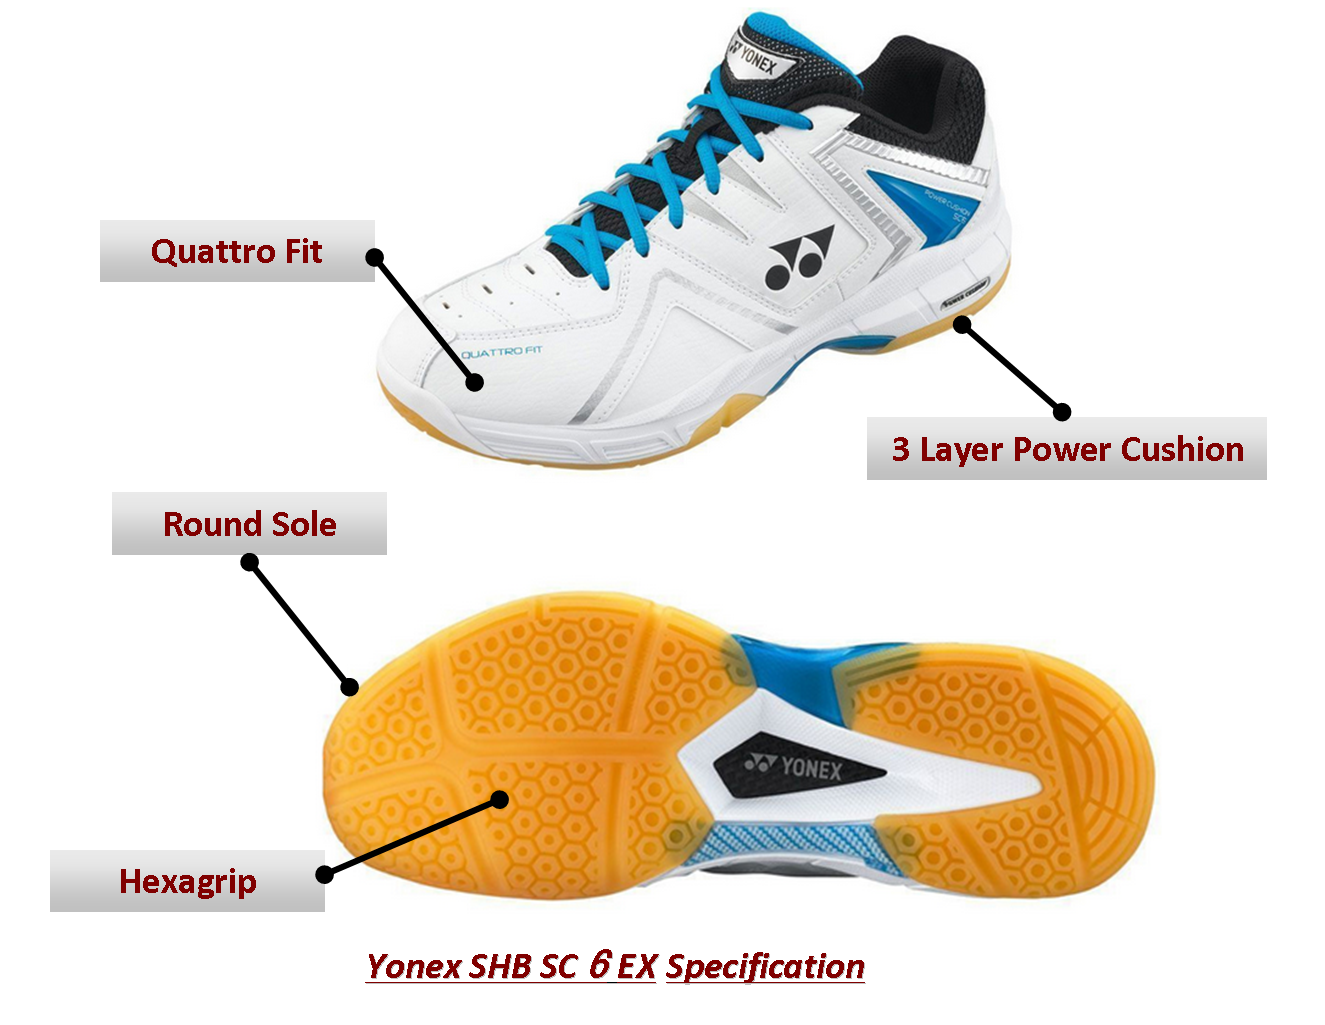 Thread: Basketball shoes or badminton shoes